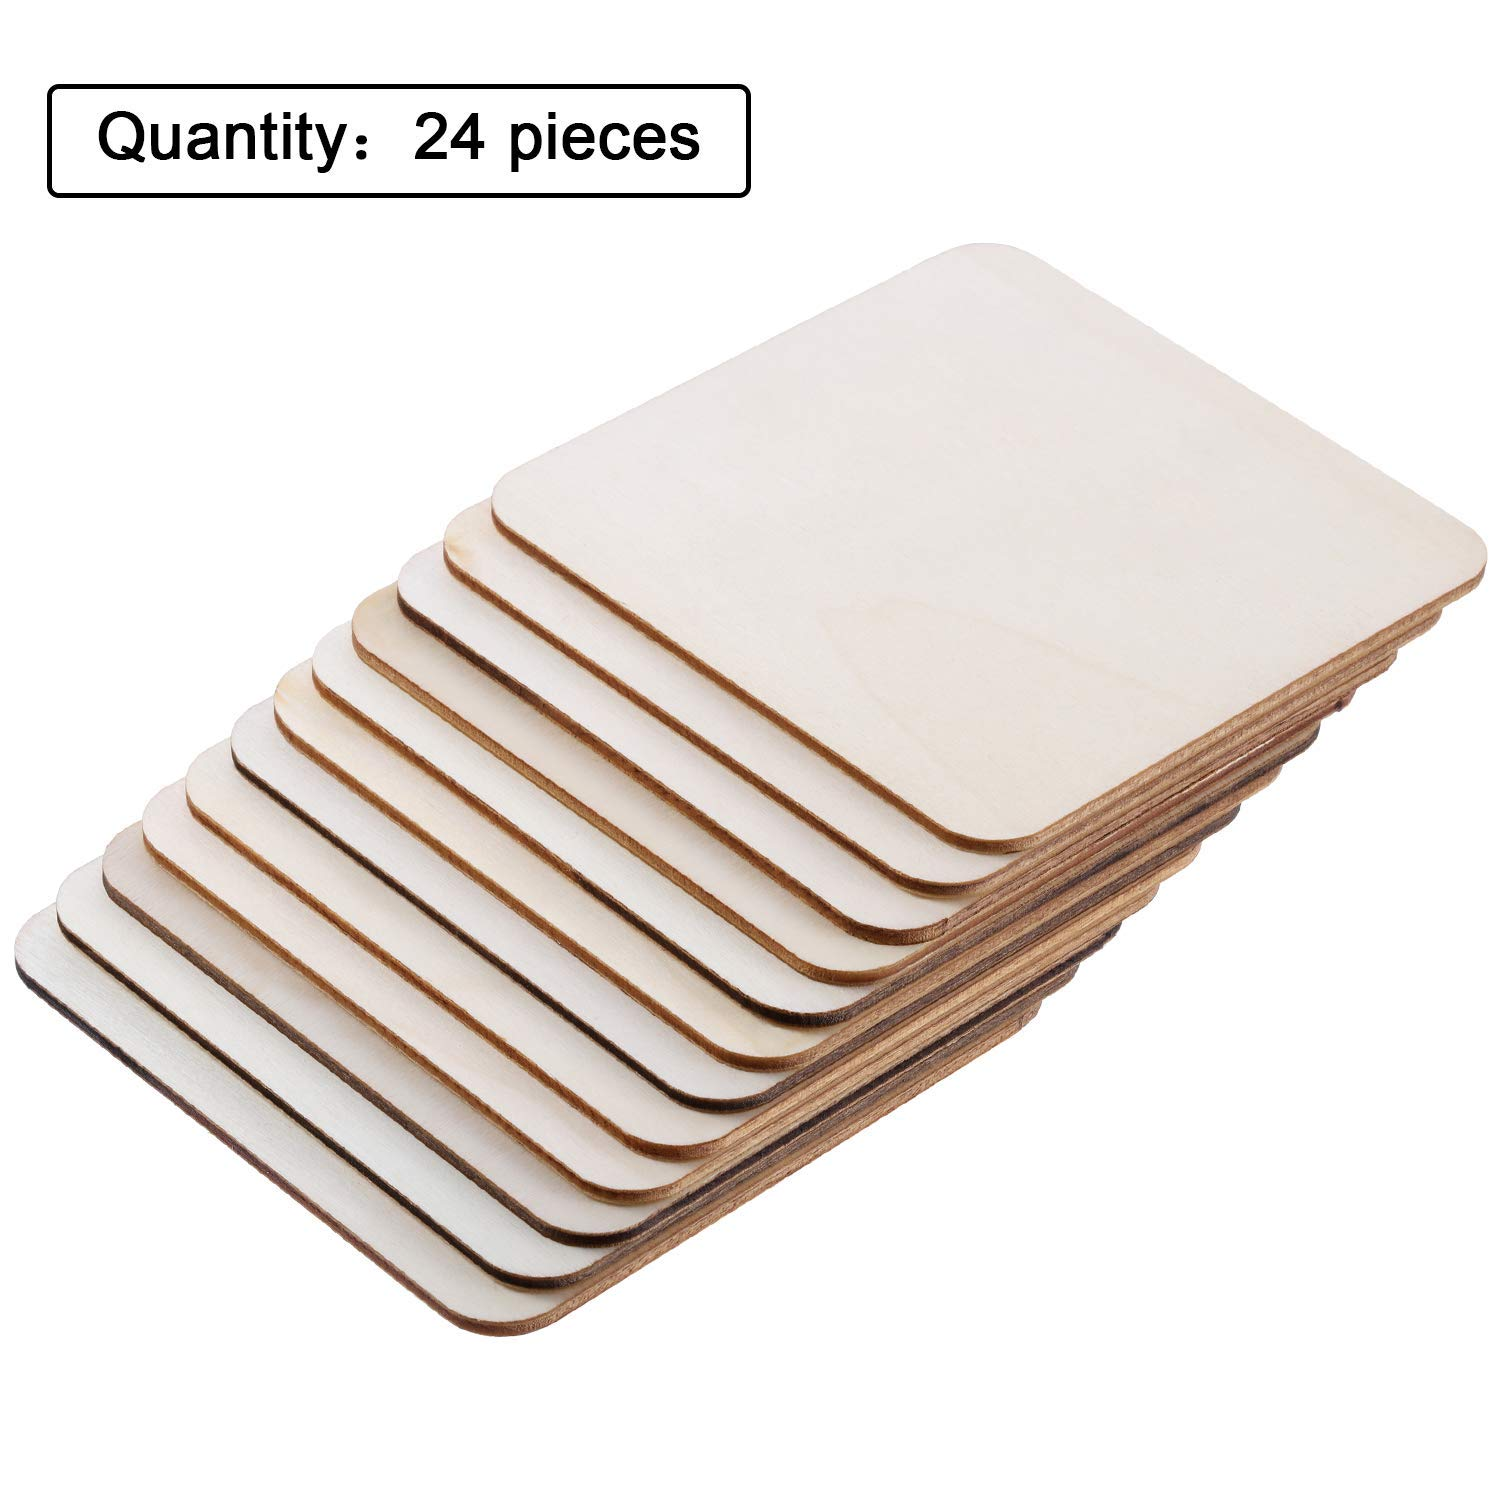 4 x 4 inch 24 Pieces Blank Wood Squares Wood Pieces Unfinished Round Corner Square Wooden Cutouts for DIY Arts Craft Project Laser Engraving Carving Decoration